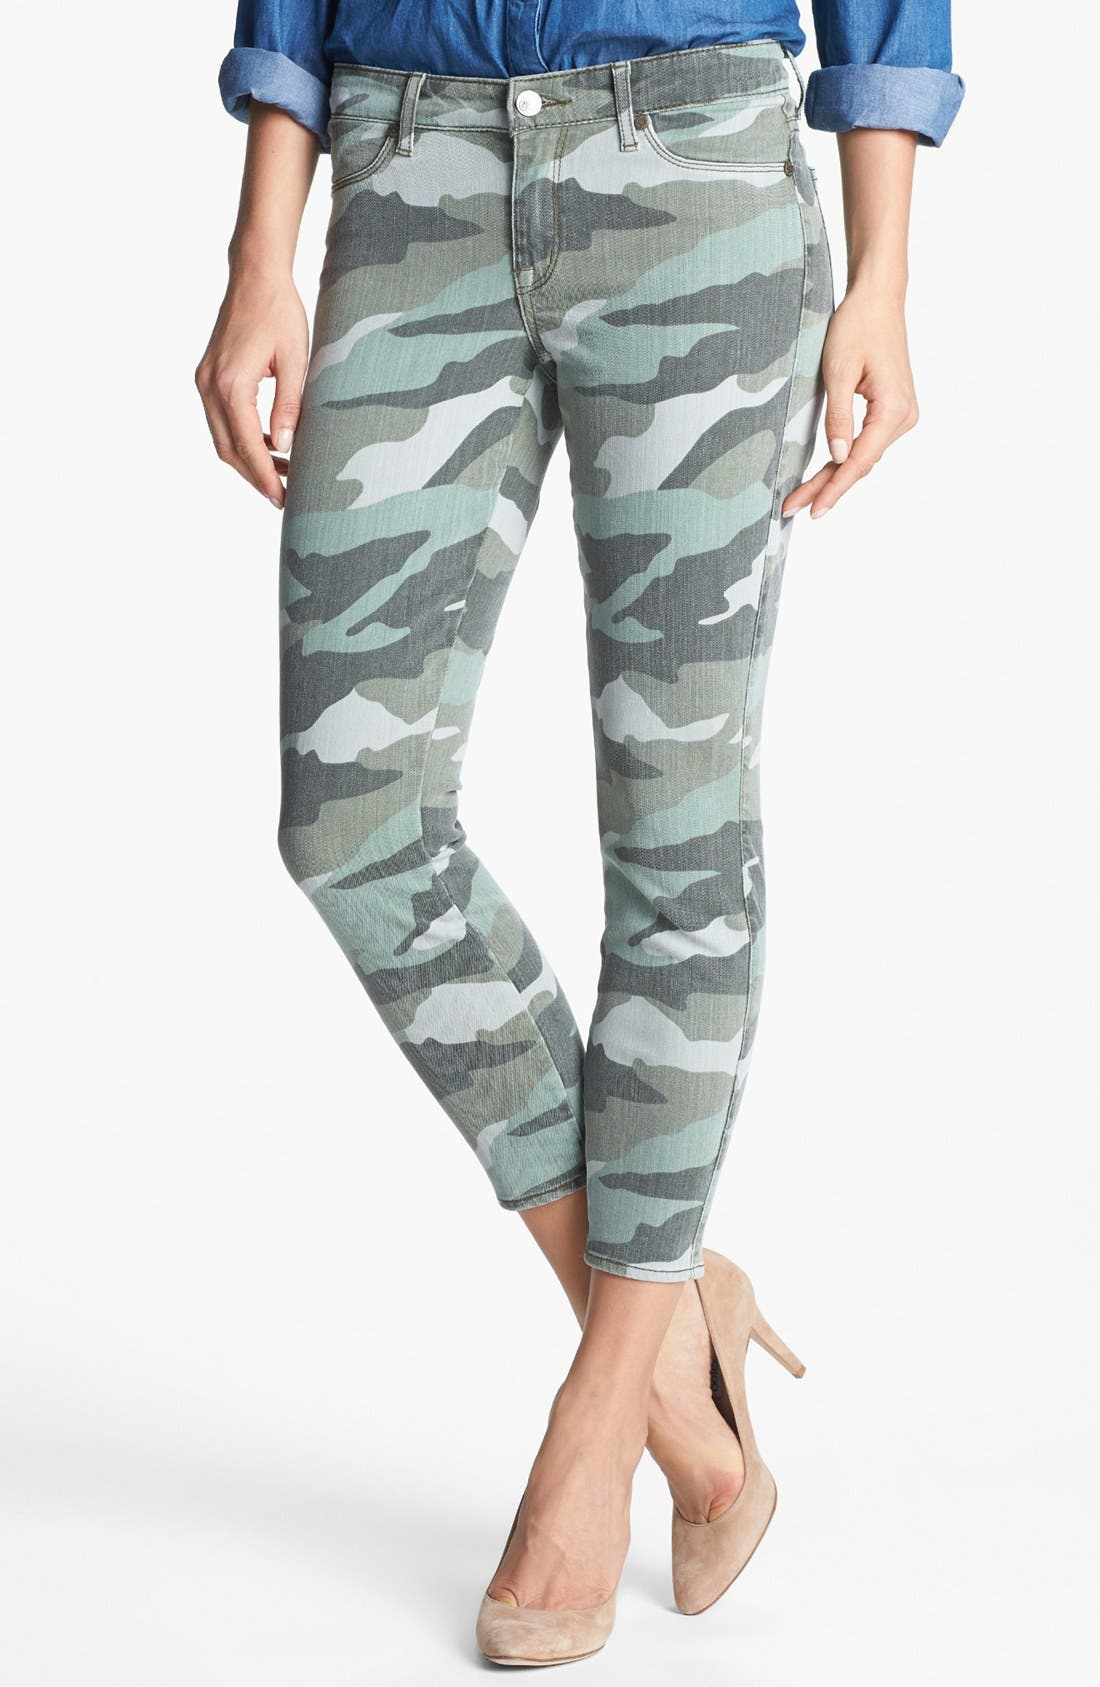 Main Image - CJ by Cookie Johnson 'Believe' Camo Crop Stretch Jeans